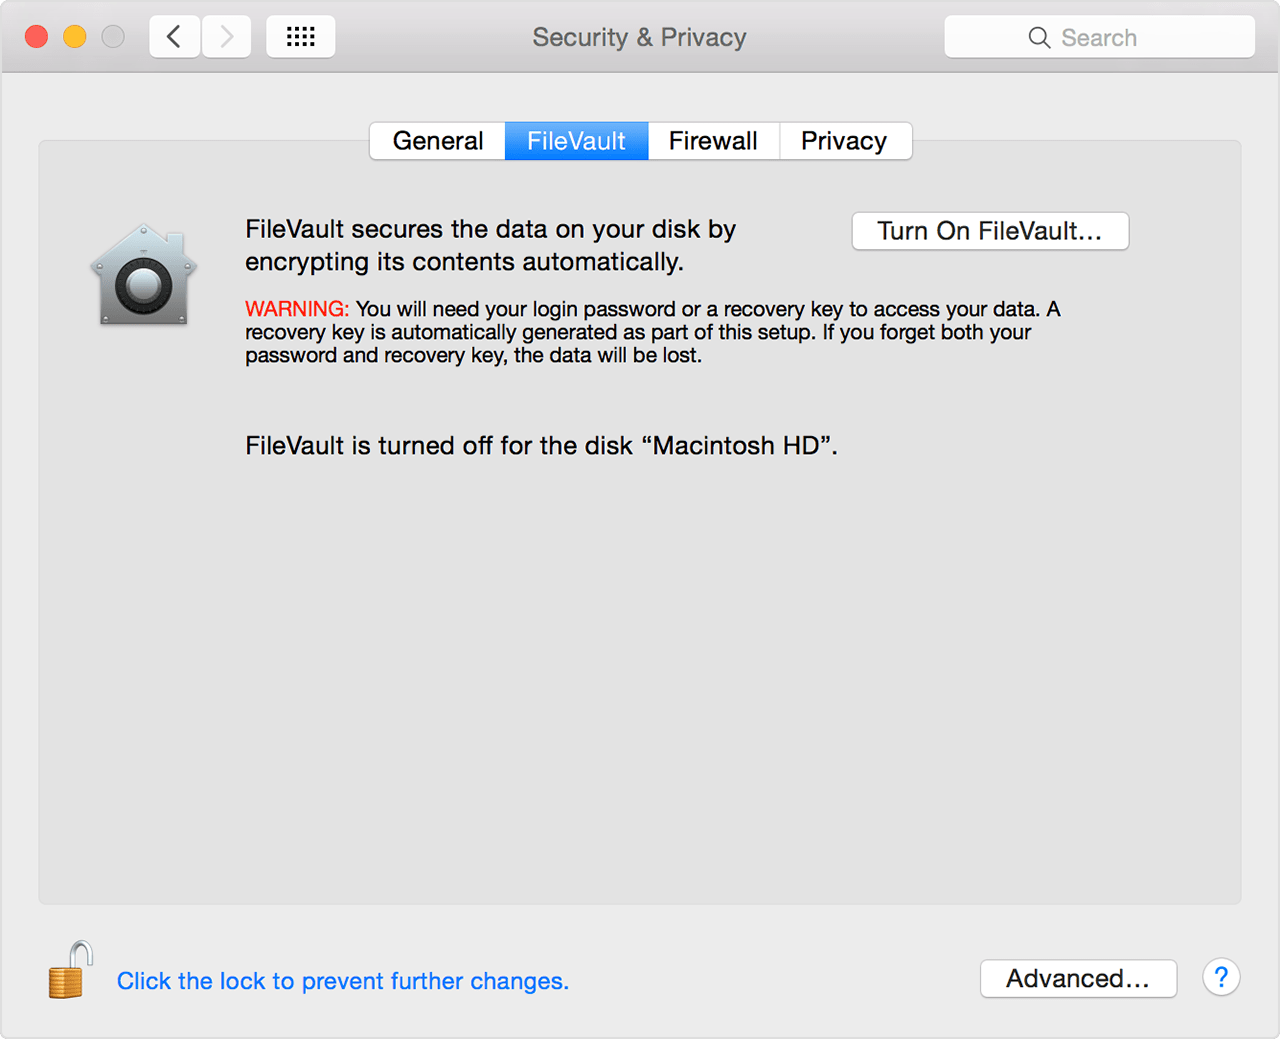 yosemite-security_and_privacy-filevault_tab